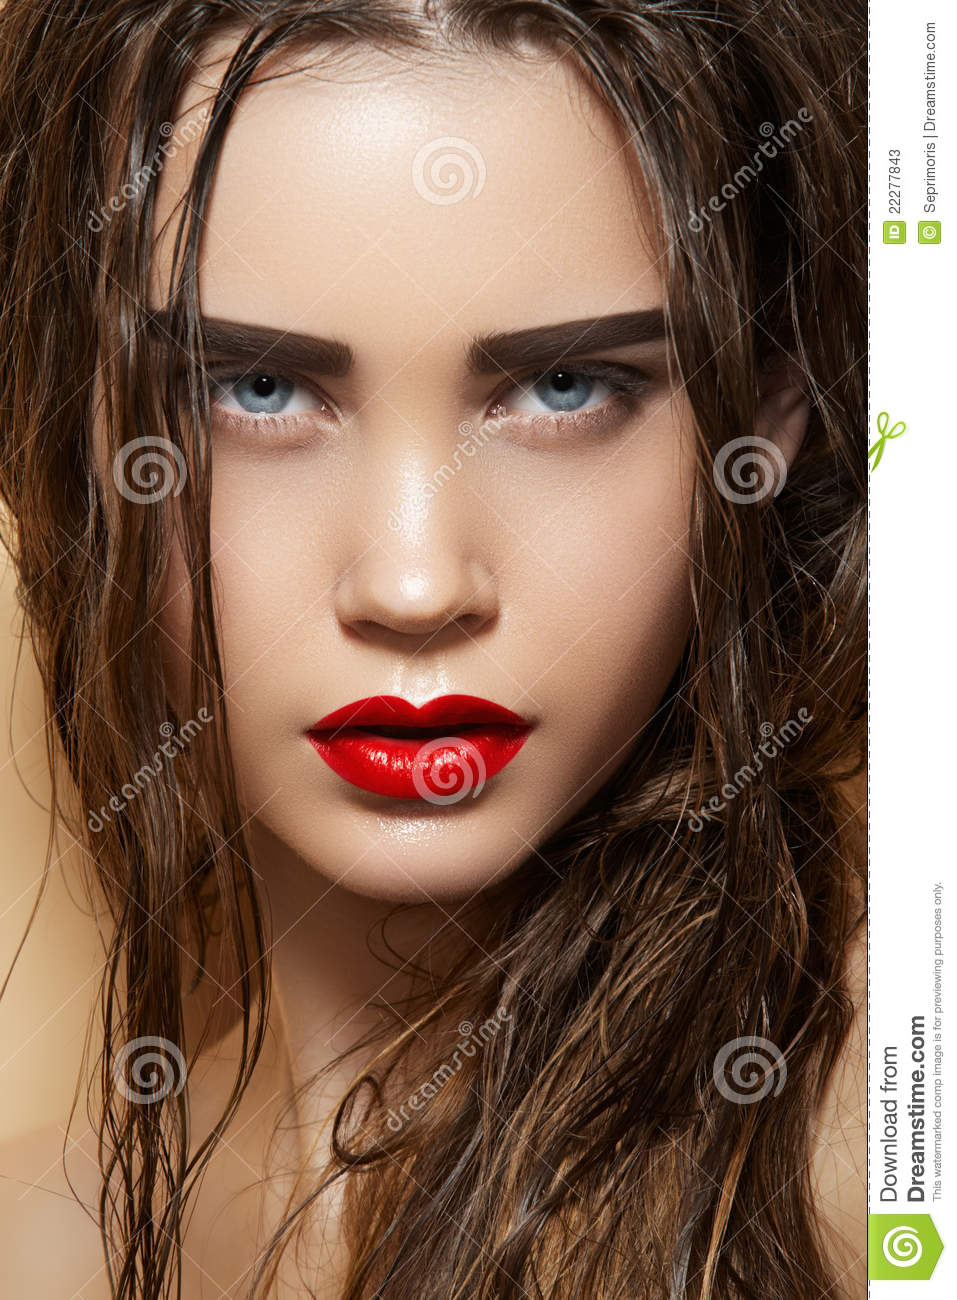 Hot Girl With Sexy Wet Hairstyle Amp Fashion Make Up Stock